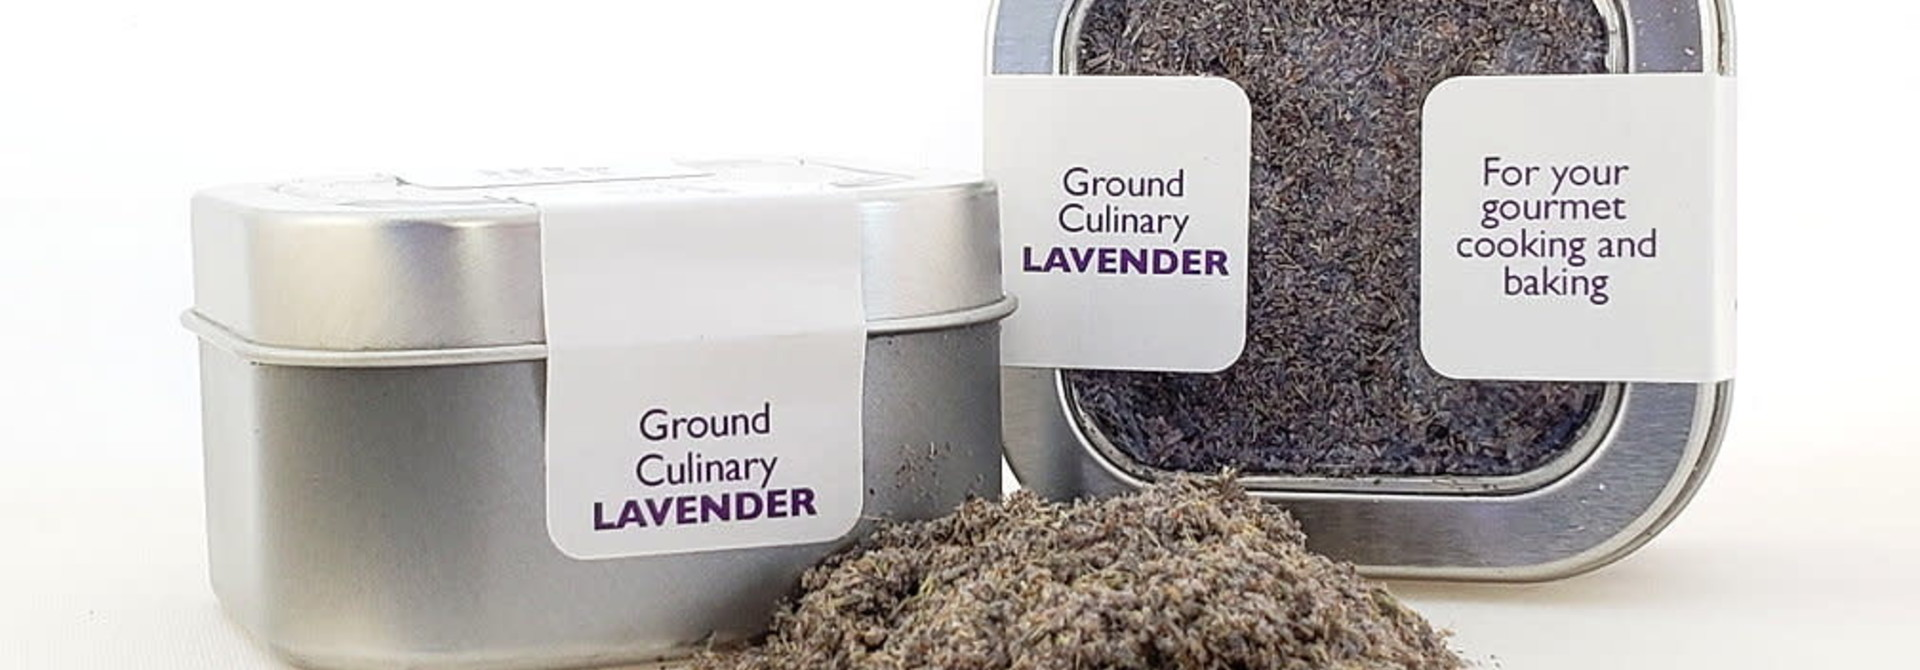 Culinary Lavender, ground, .7 oz tin